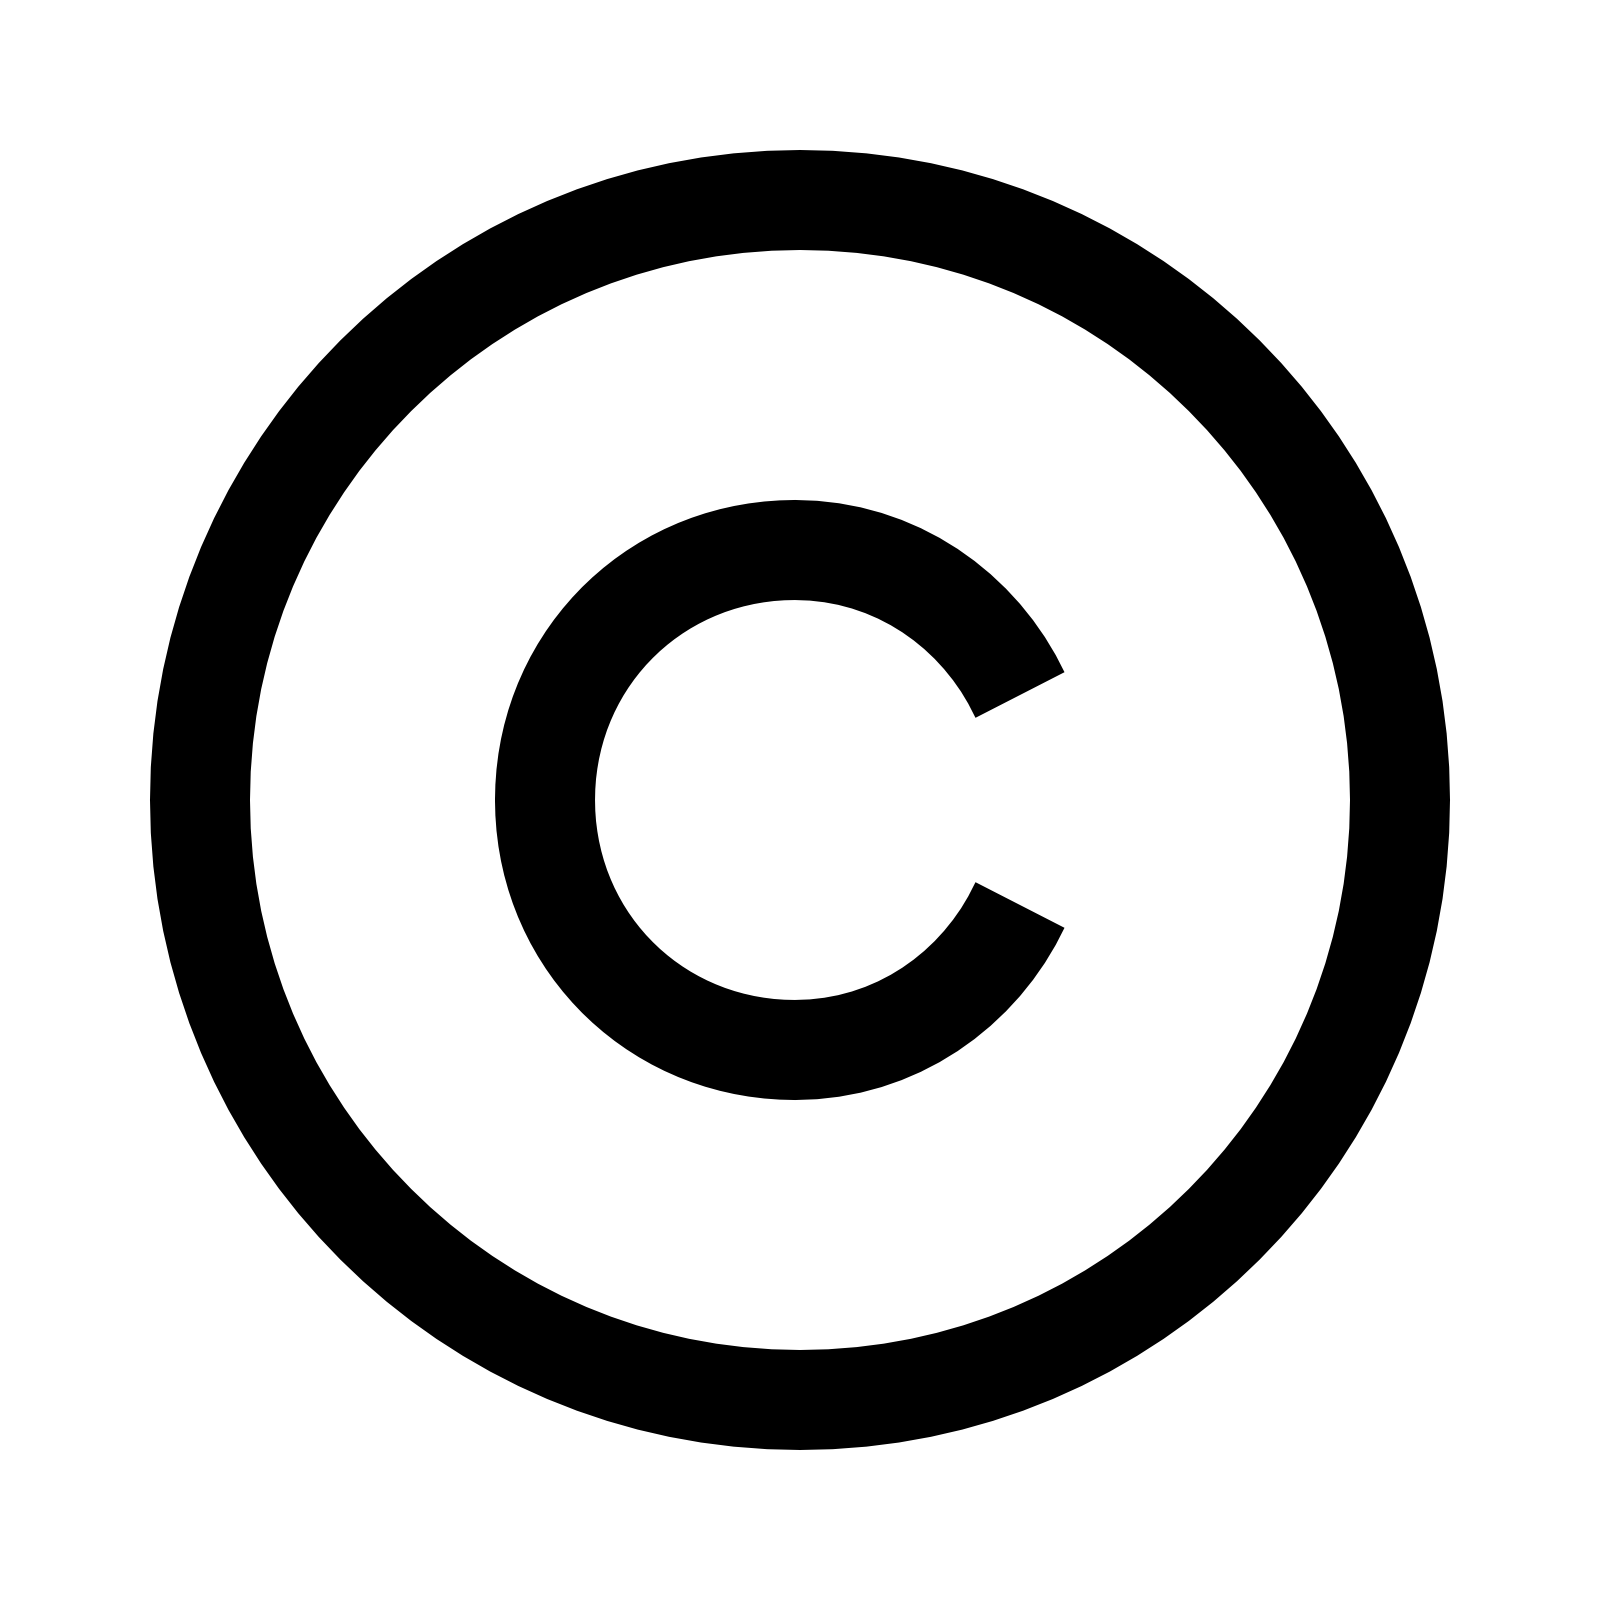 Copyright Icon - C, Transparent background PNG HD thumbnail